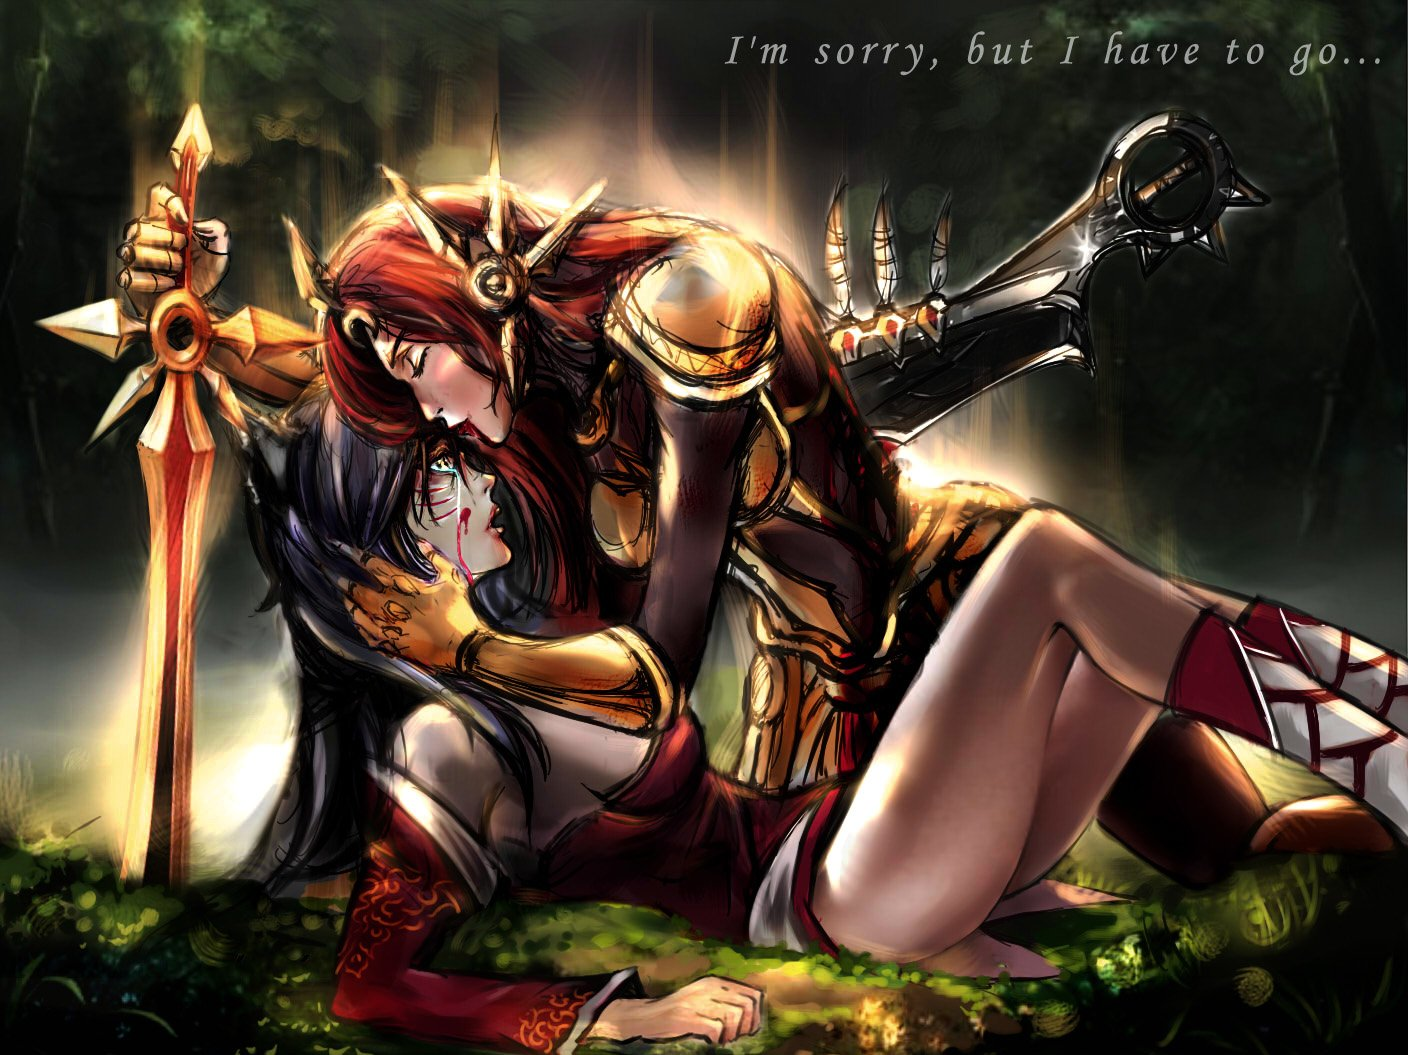 Video Game - League Of Legends  Ahri (League Of Legends) Leona (League Of Legends) Sword Weapon Armor Kiss Tears Blood Wound Wallpaper